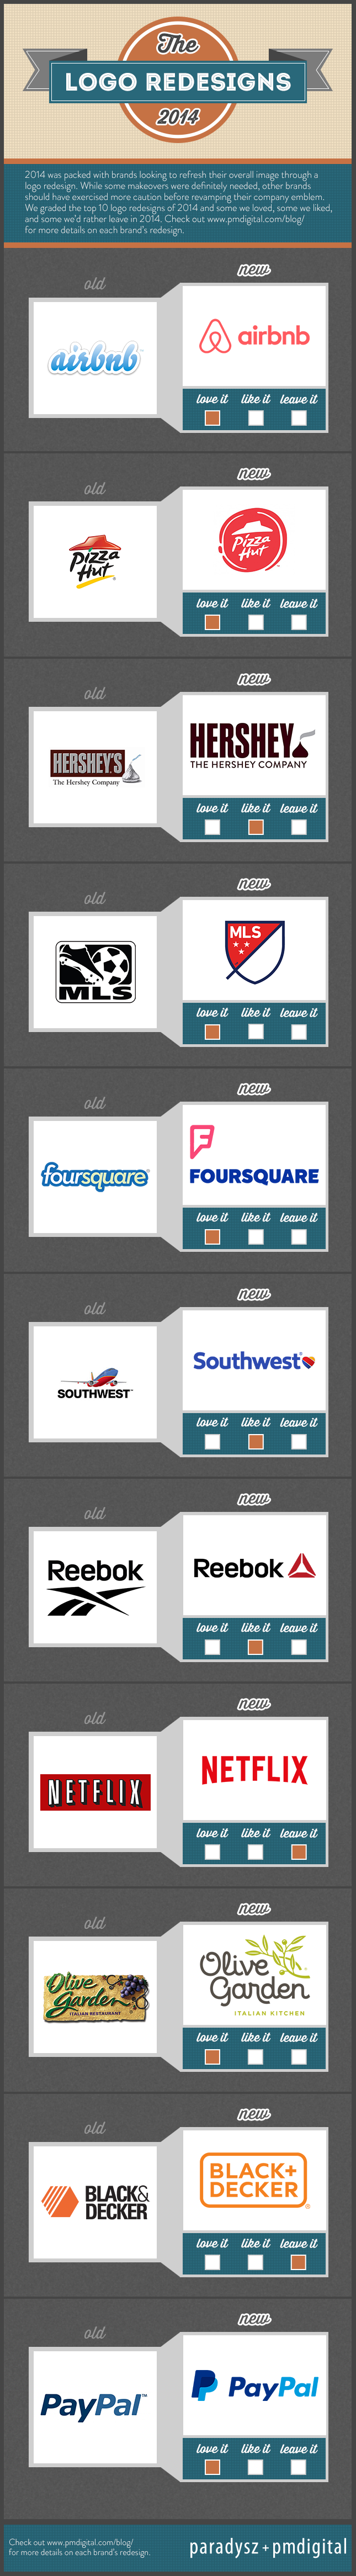 Airbnb, Reebok & Olive Garden: The Major Logo Redesigns of 2014 [Infographic]